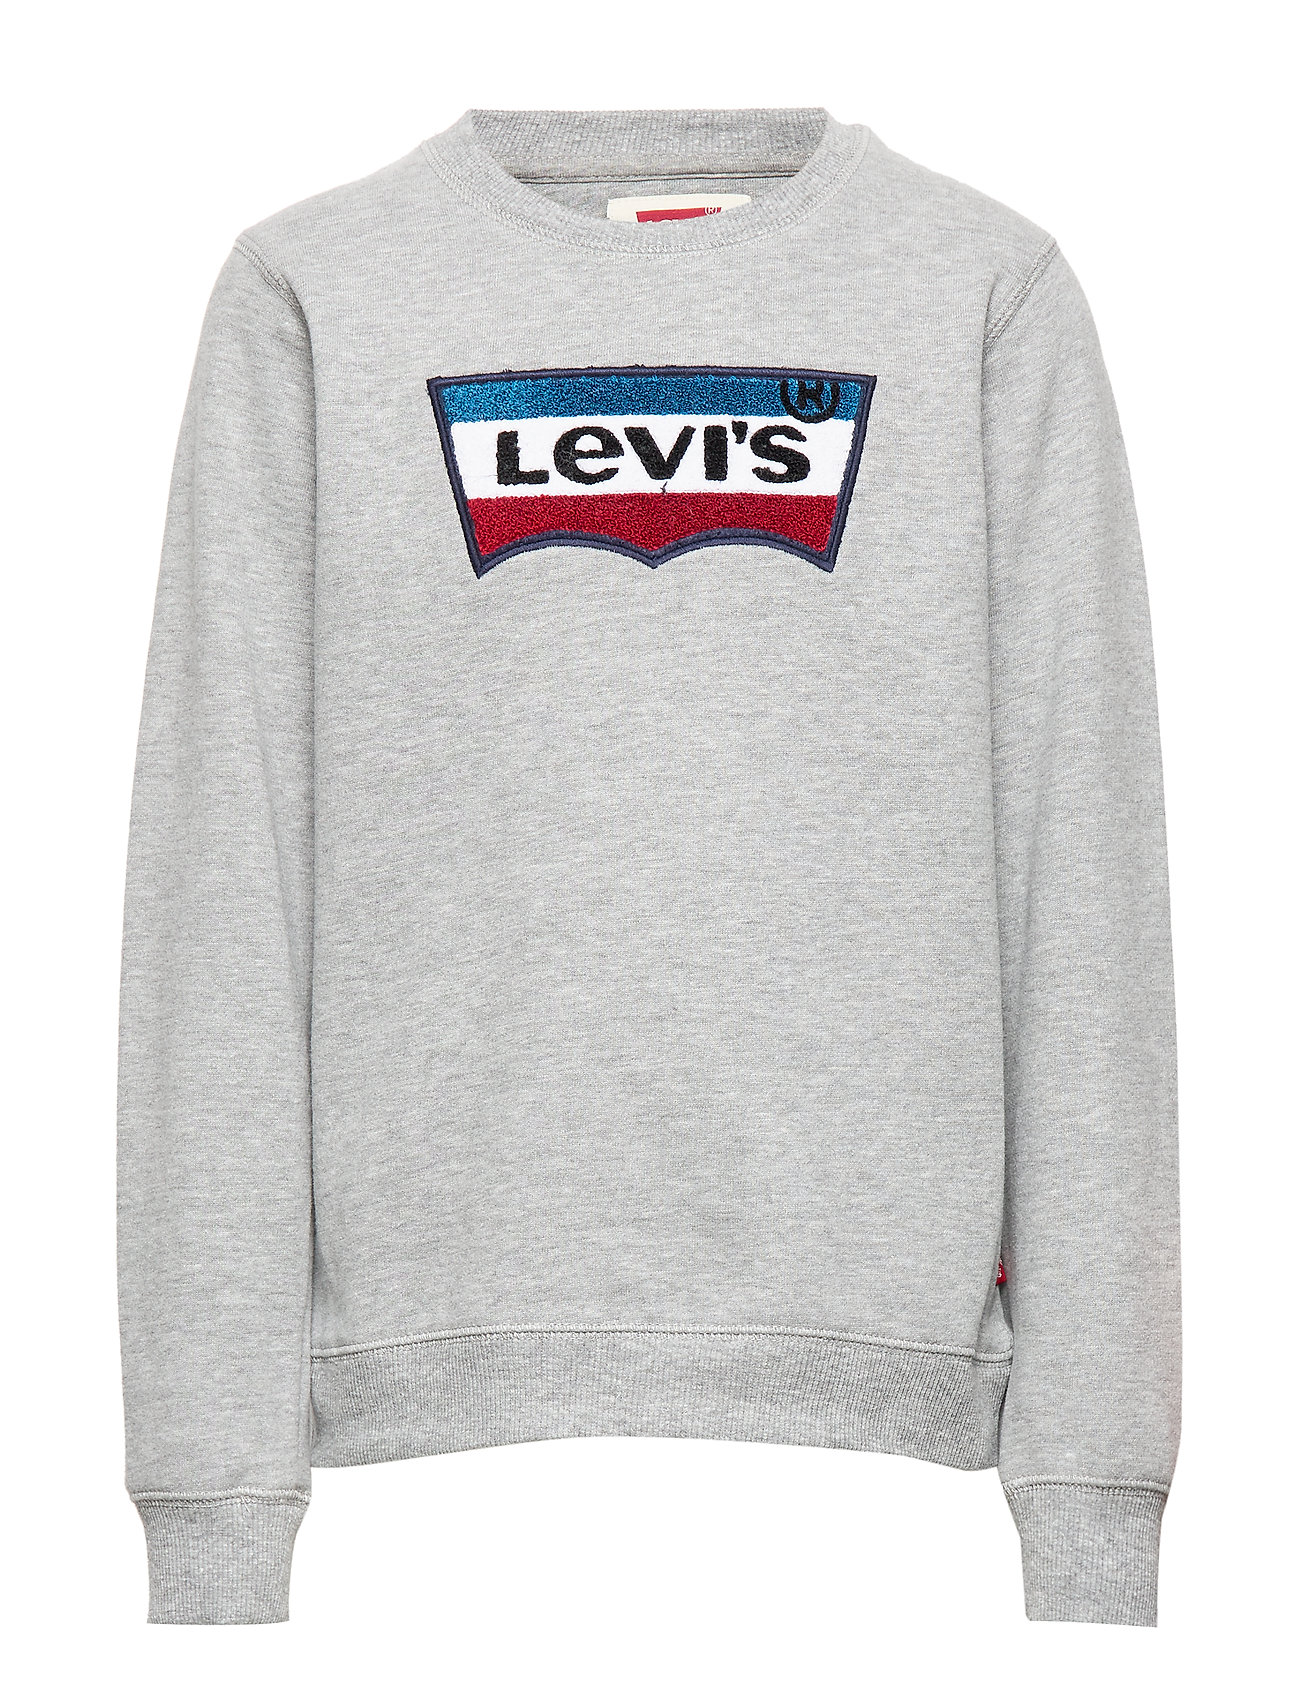 Levi's SWEAT SHIRT - MARINE